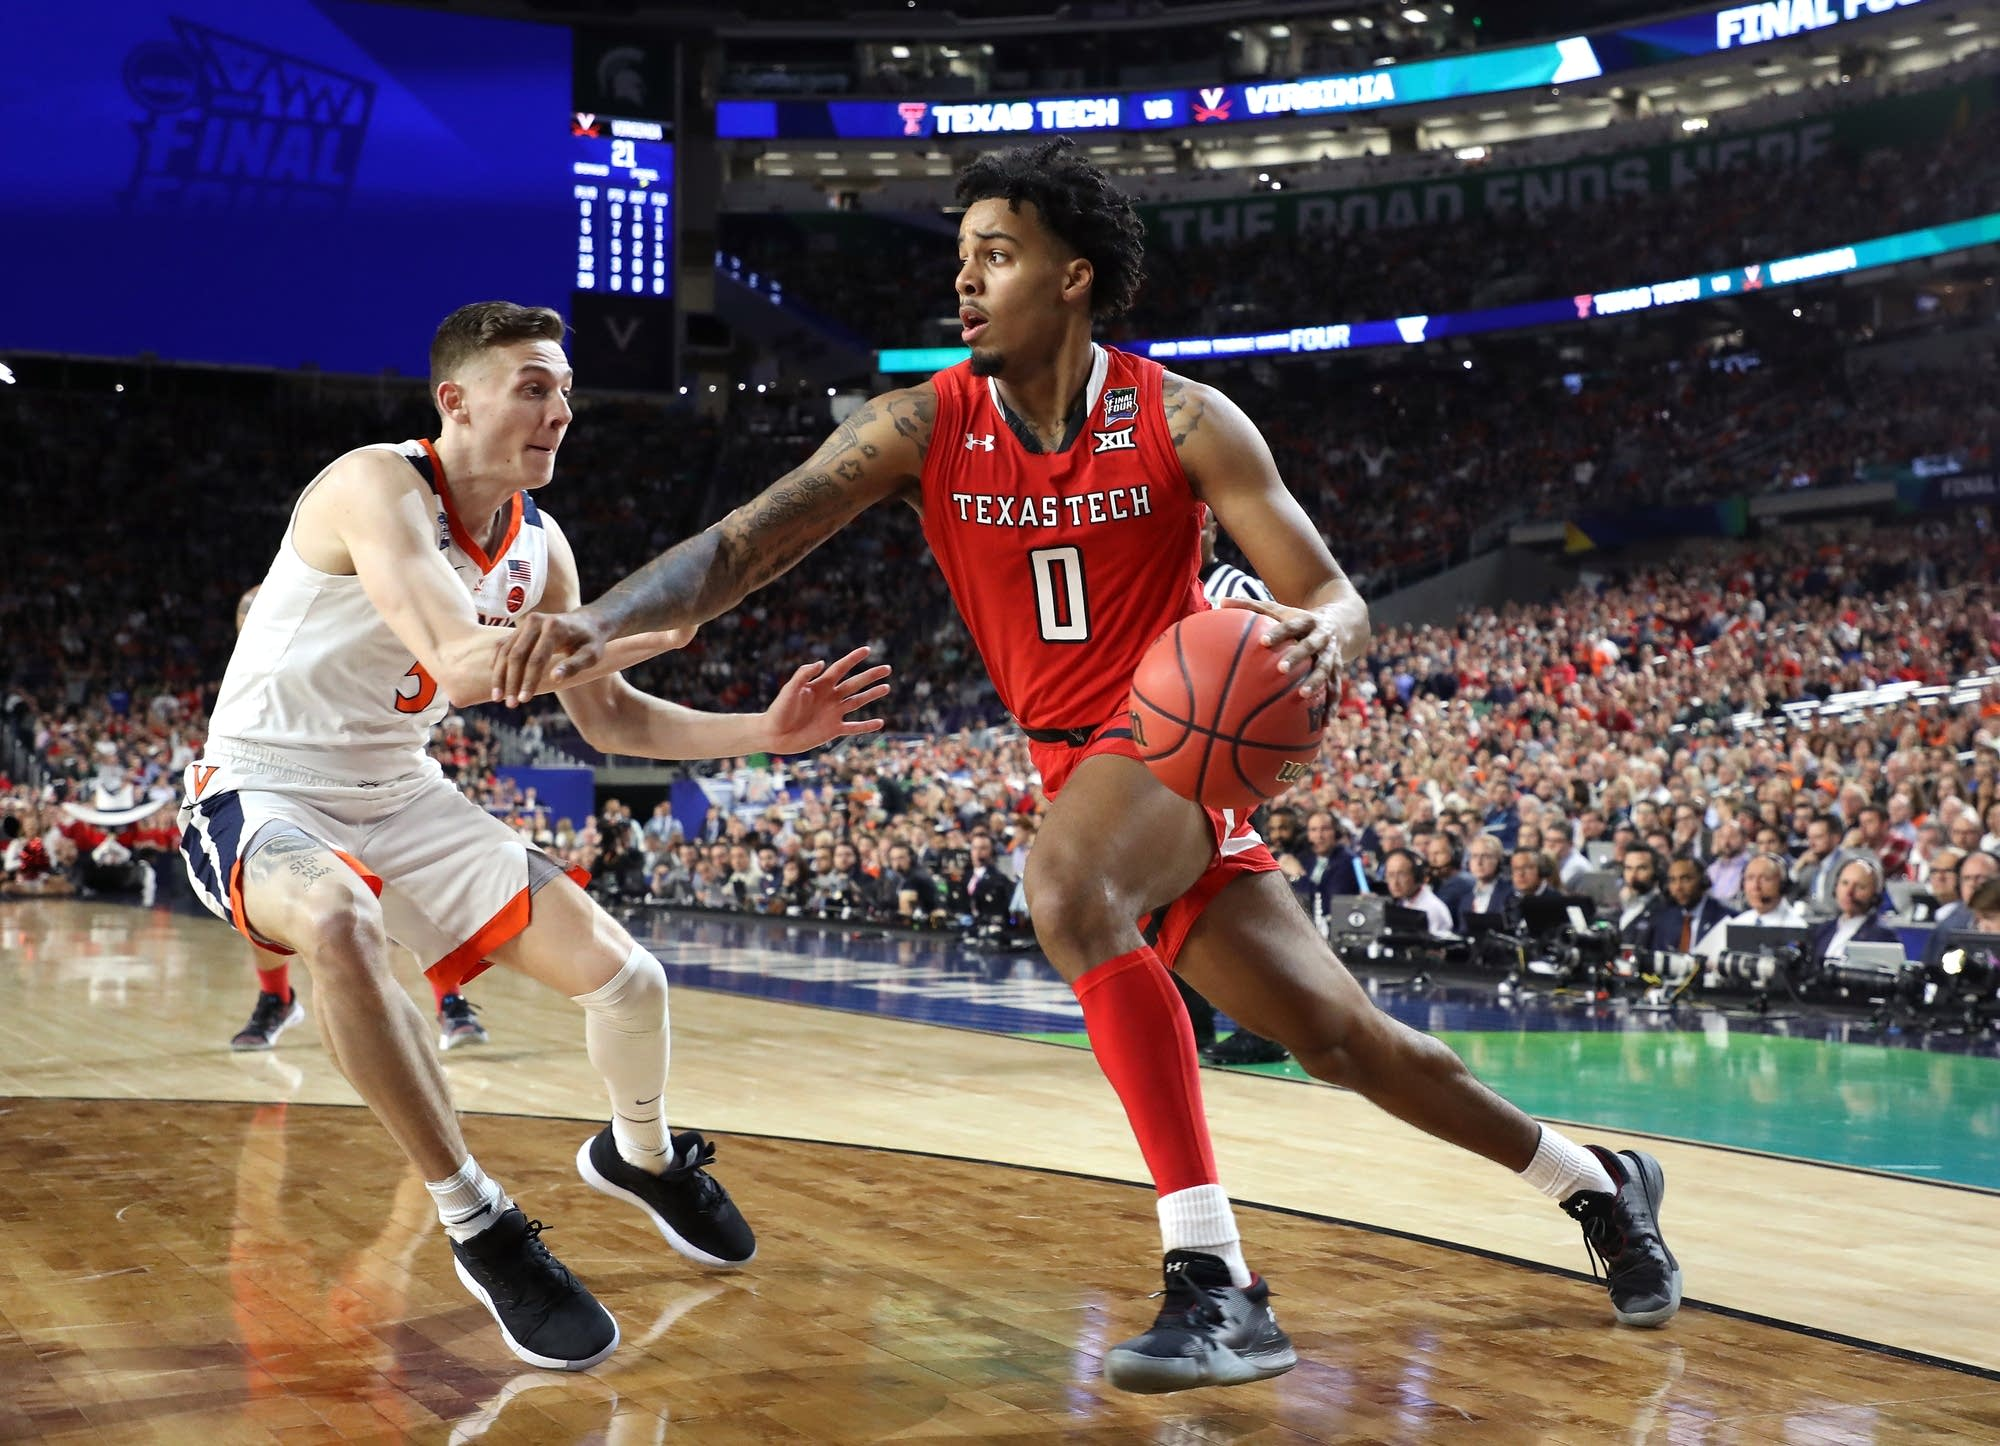 Kyler Edwards (0) of Texas Tech is defended by Kyle Guy (5) of Virginia